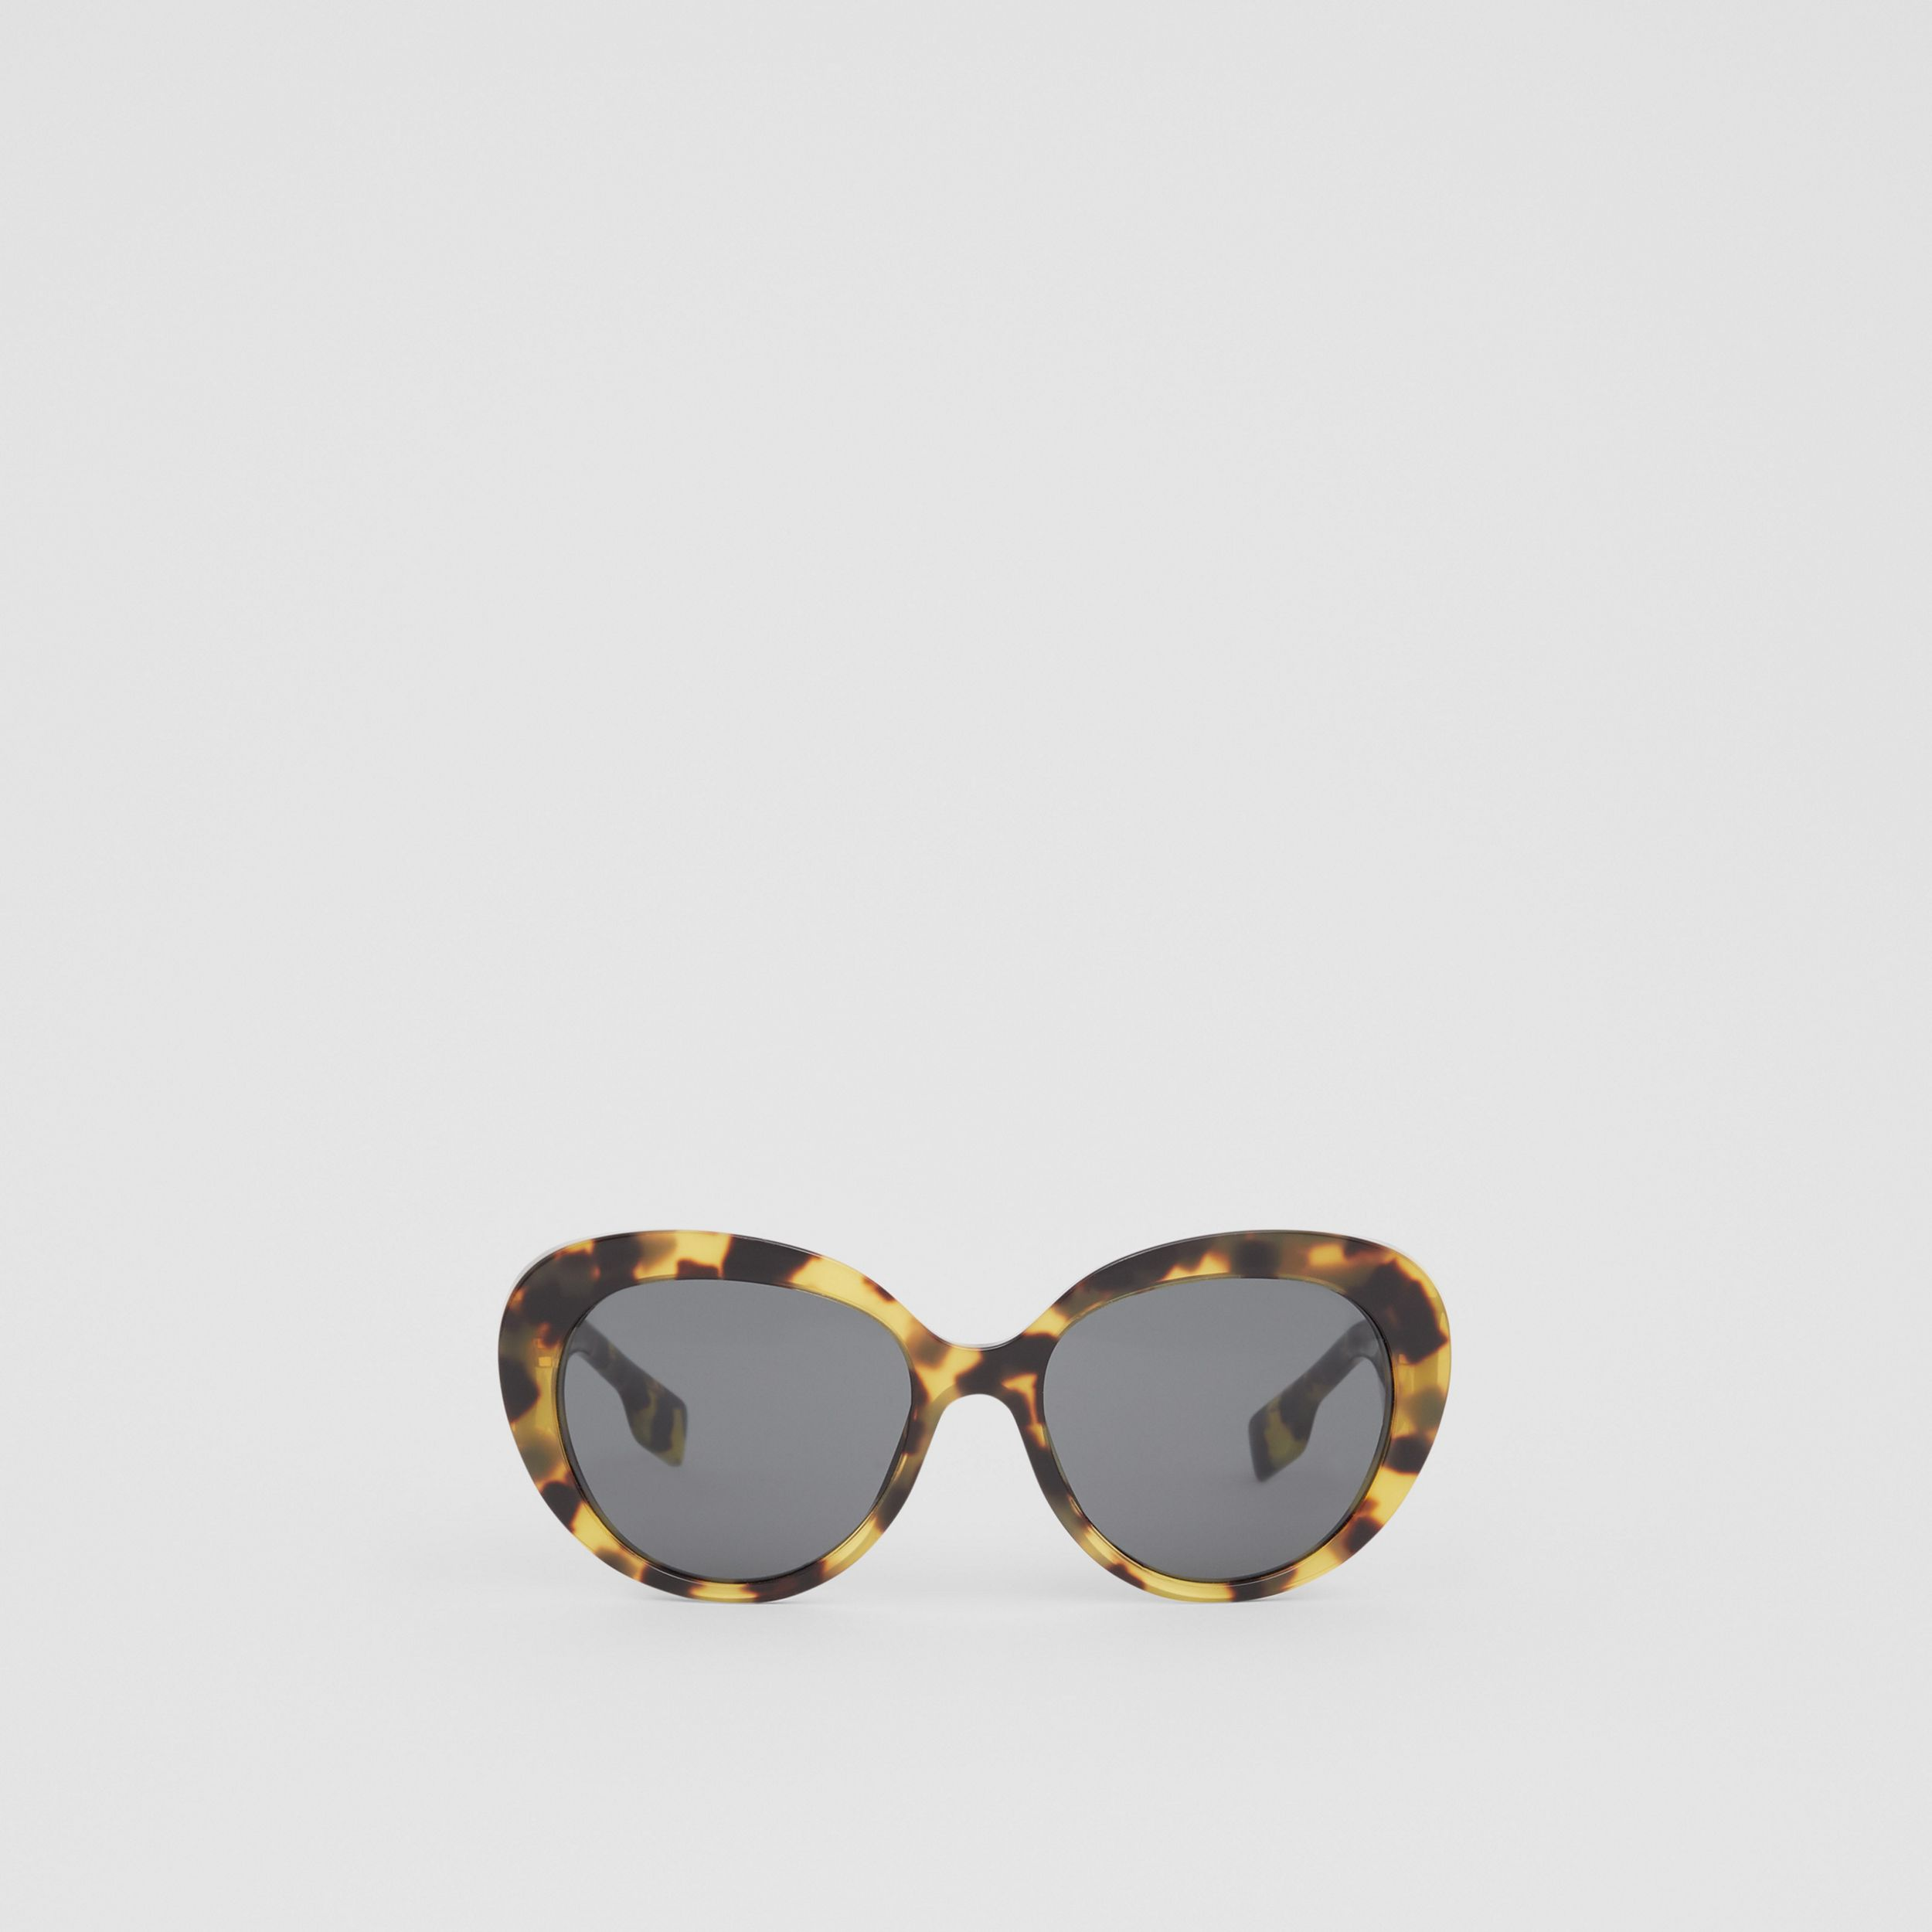 Monogram Motif Cat-eye Frame Sunglasses in Bright Tortoiseshell - Women | Burberry Australia - 1